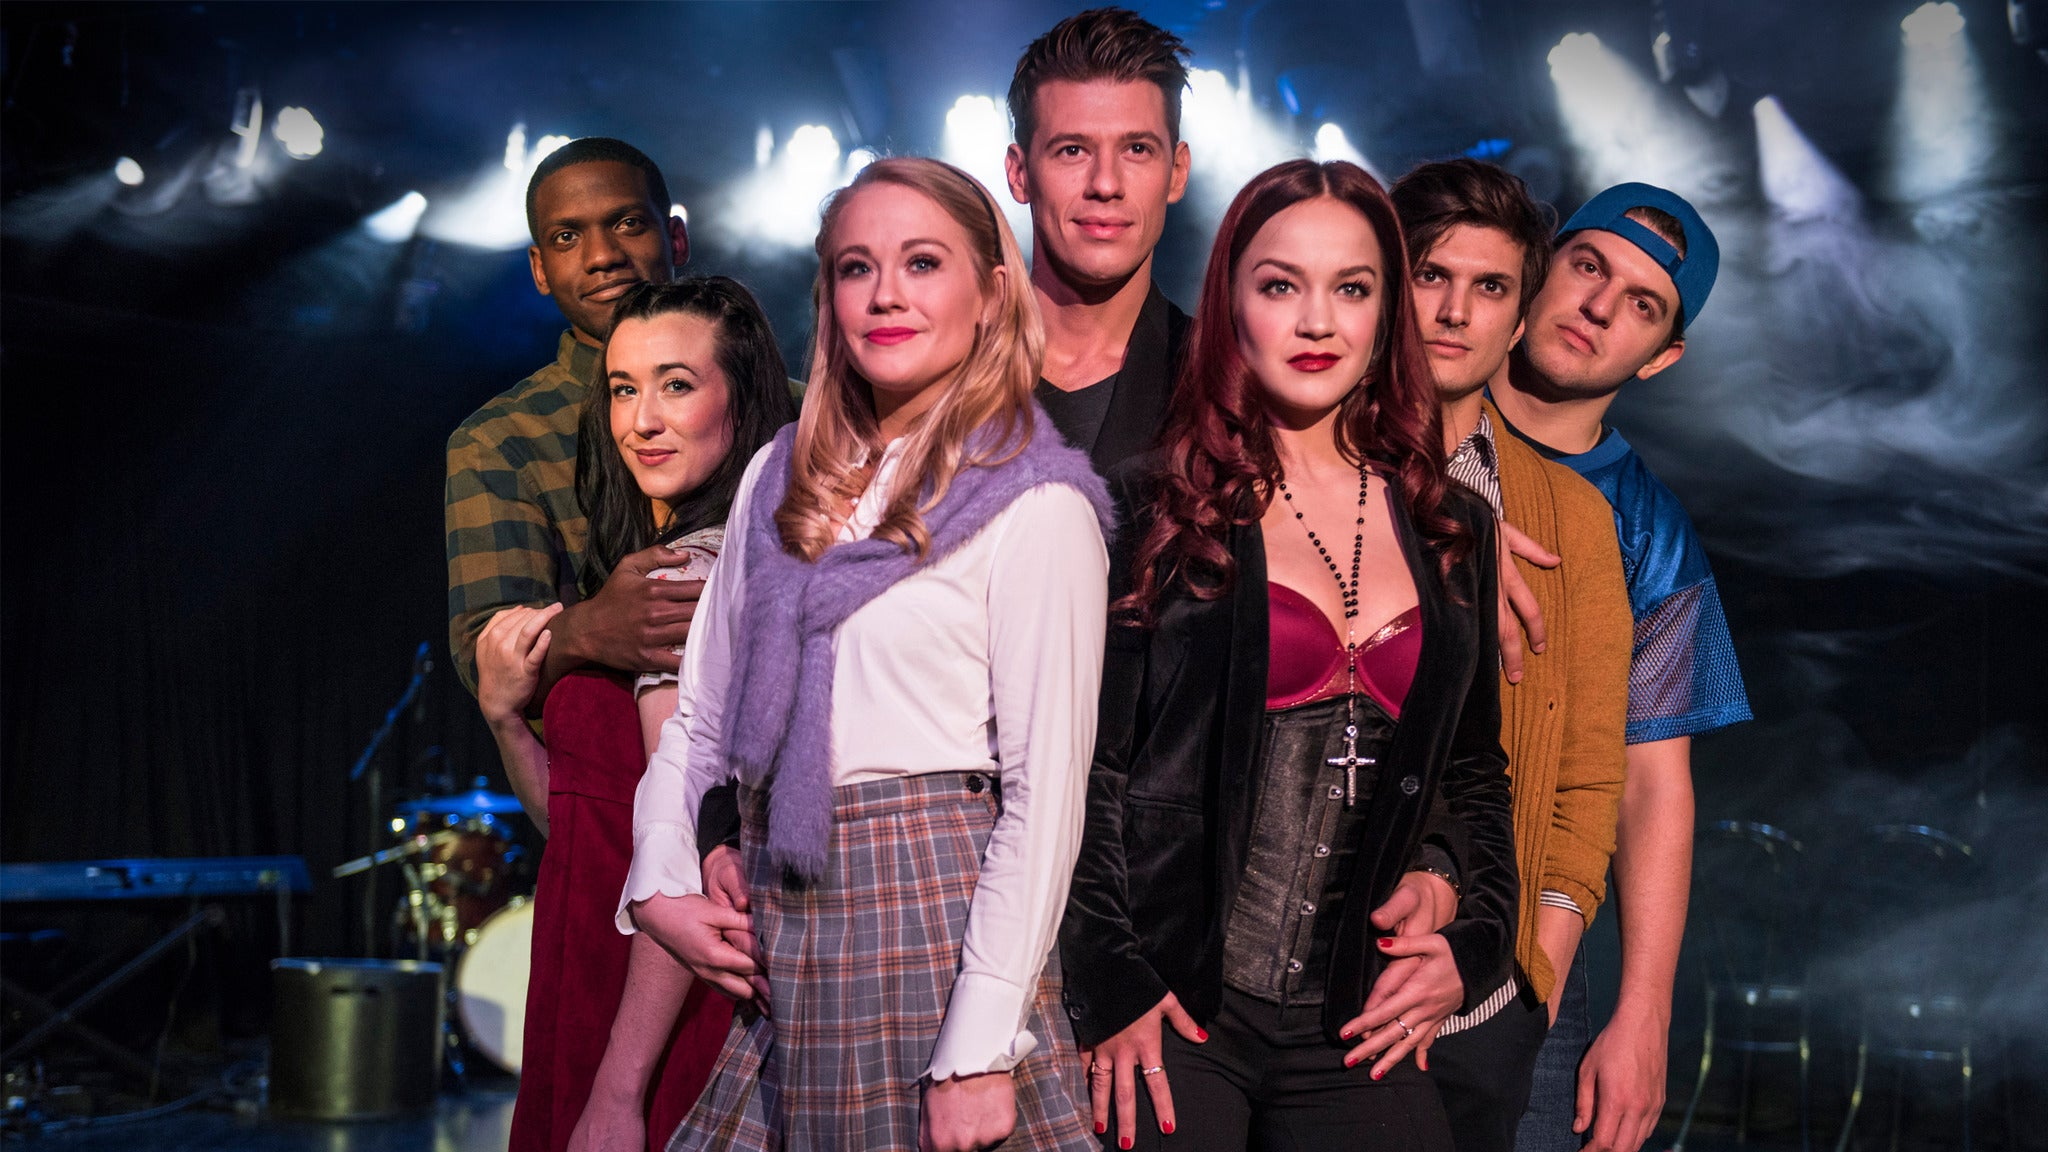 Cruel Intentions: The 90s Musical (Chicago) - Chicago, IL 60611